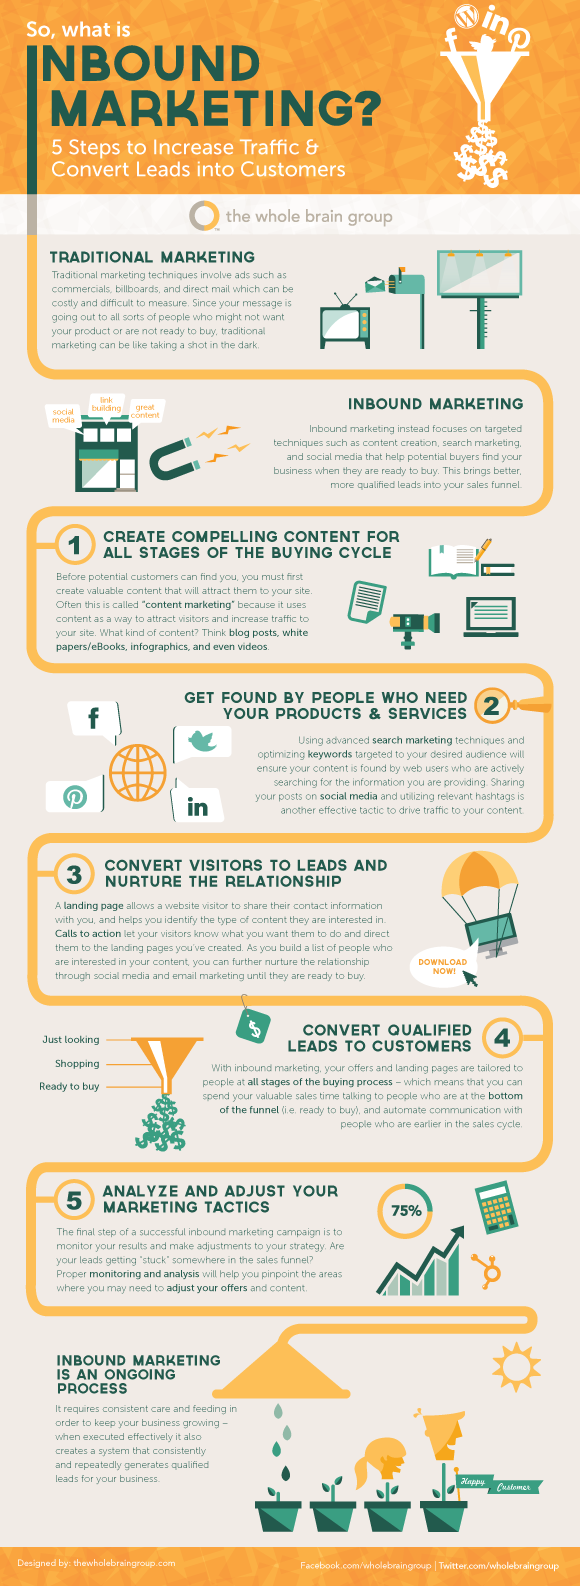 Inbound Marketing [infographic]